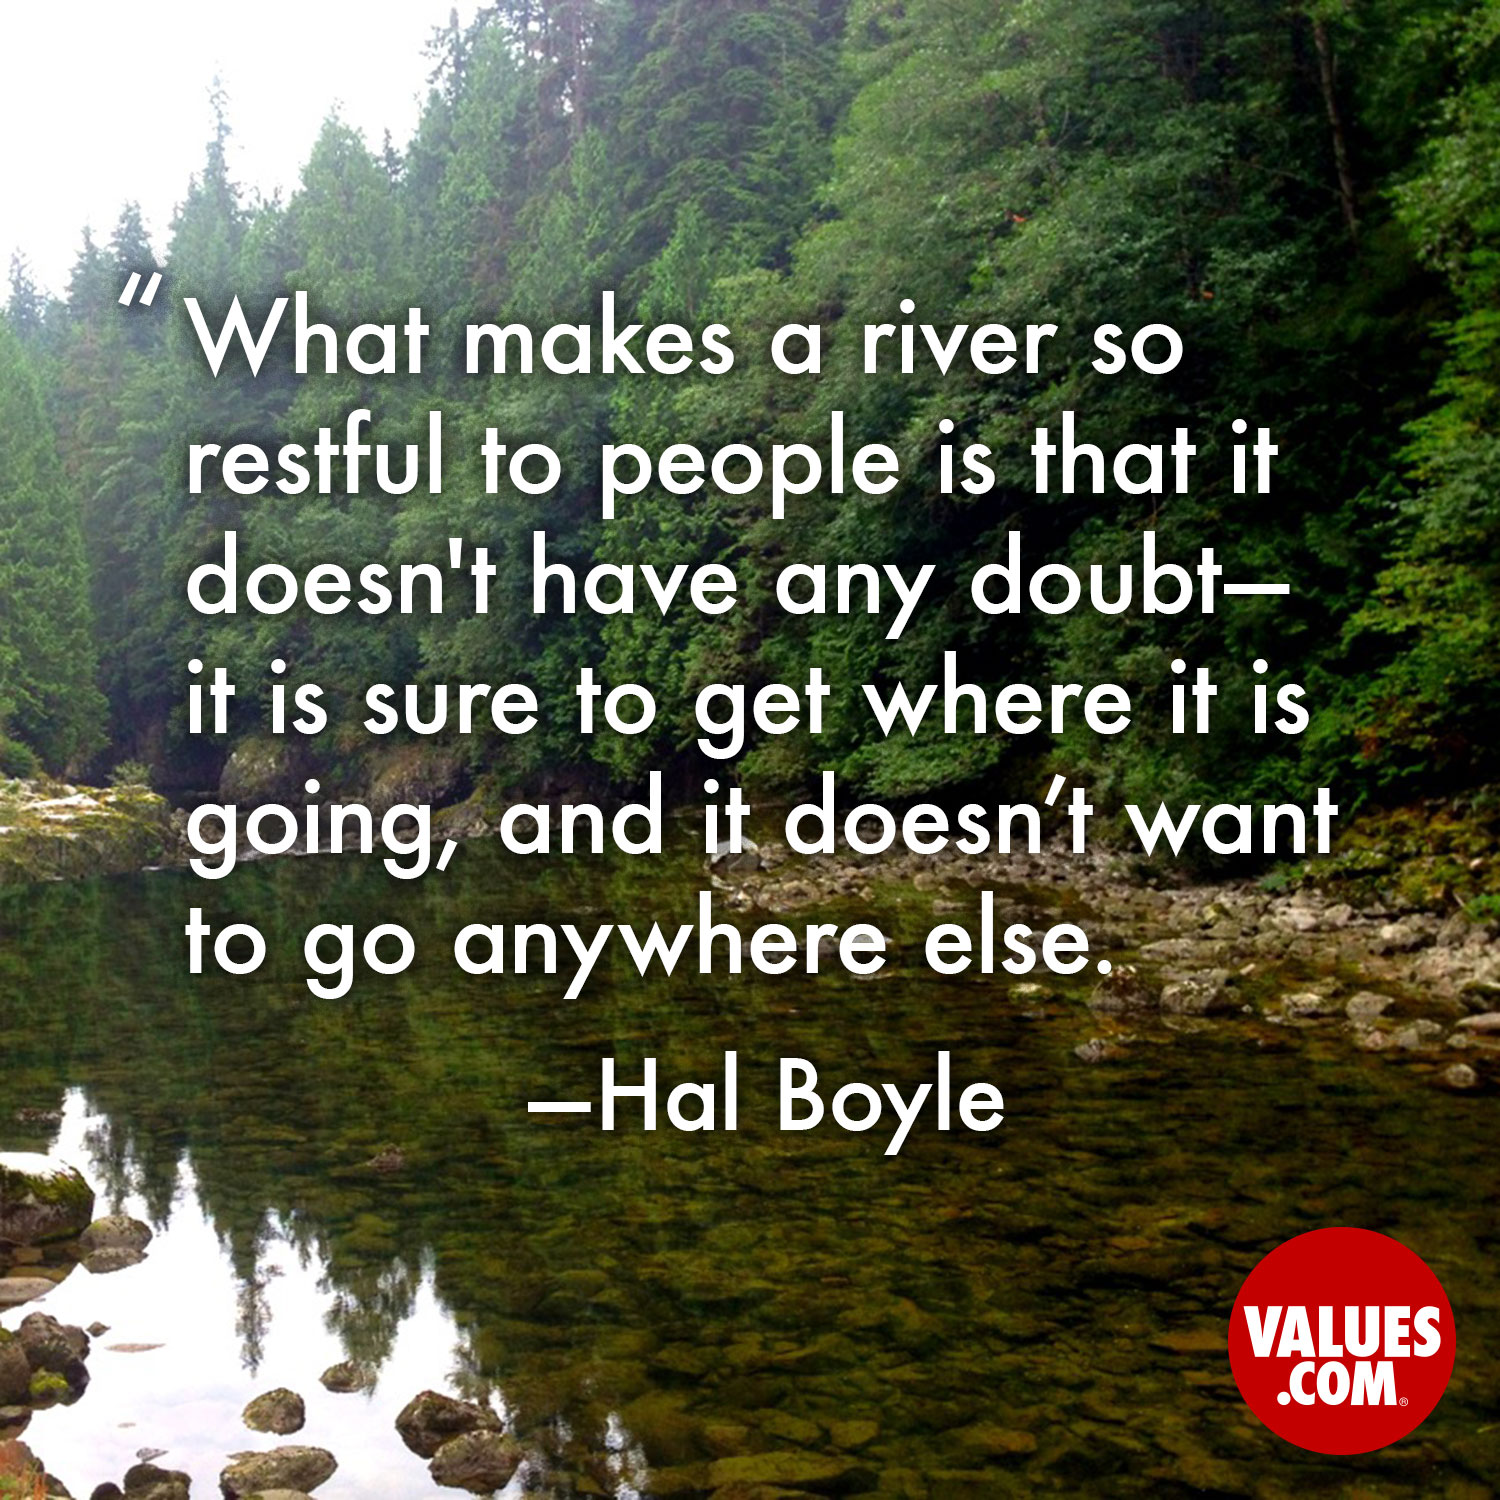 What makes a river so restful to people is that it doesn't have any doubt - it is sure to get where it is going, and it doesn't want to go anywhere else. —Hal Boyle